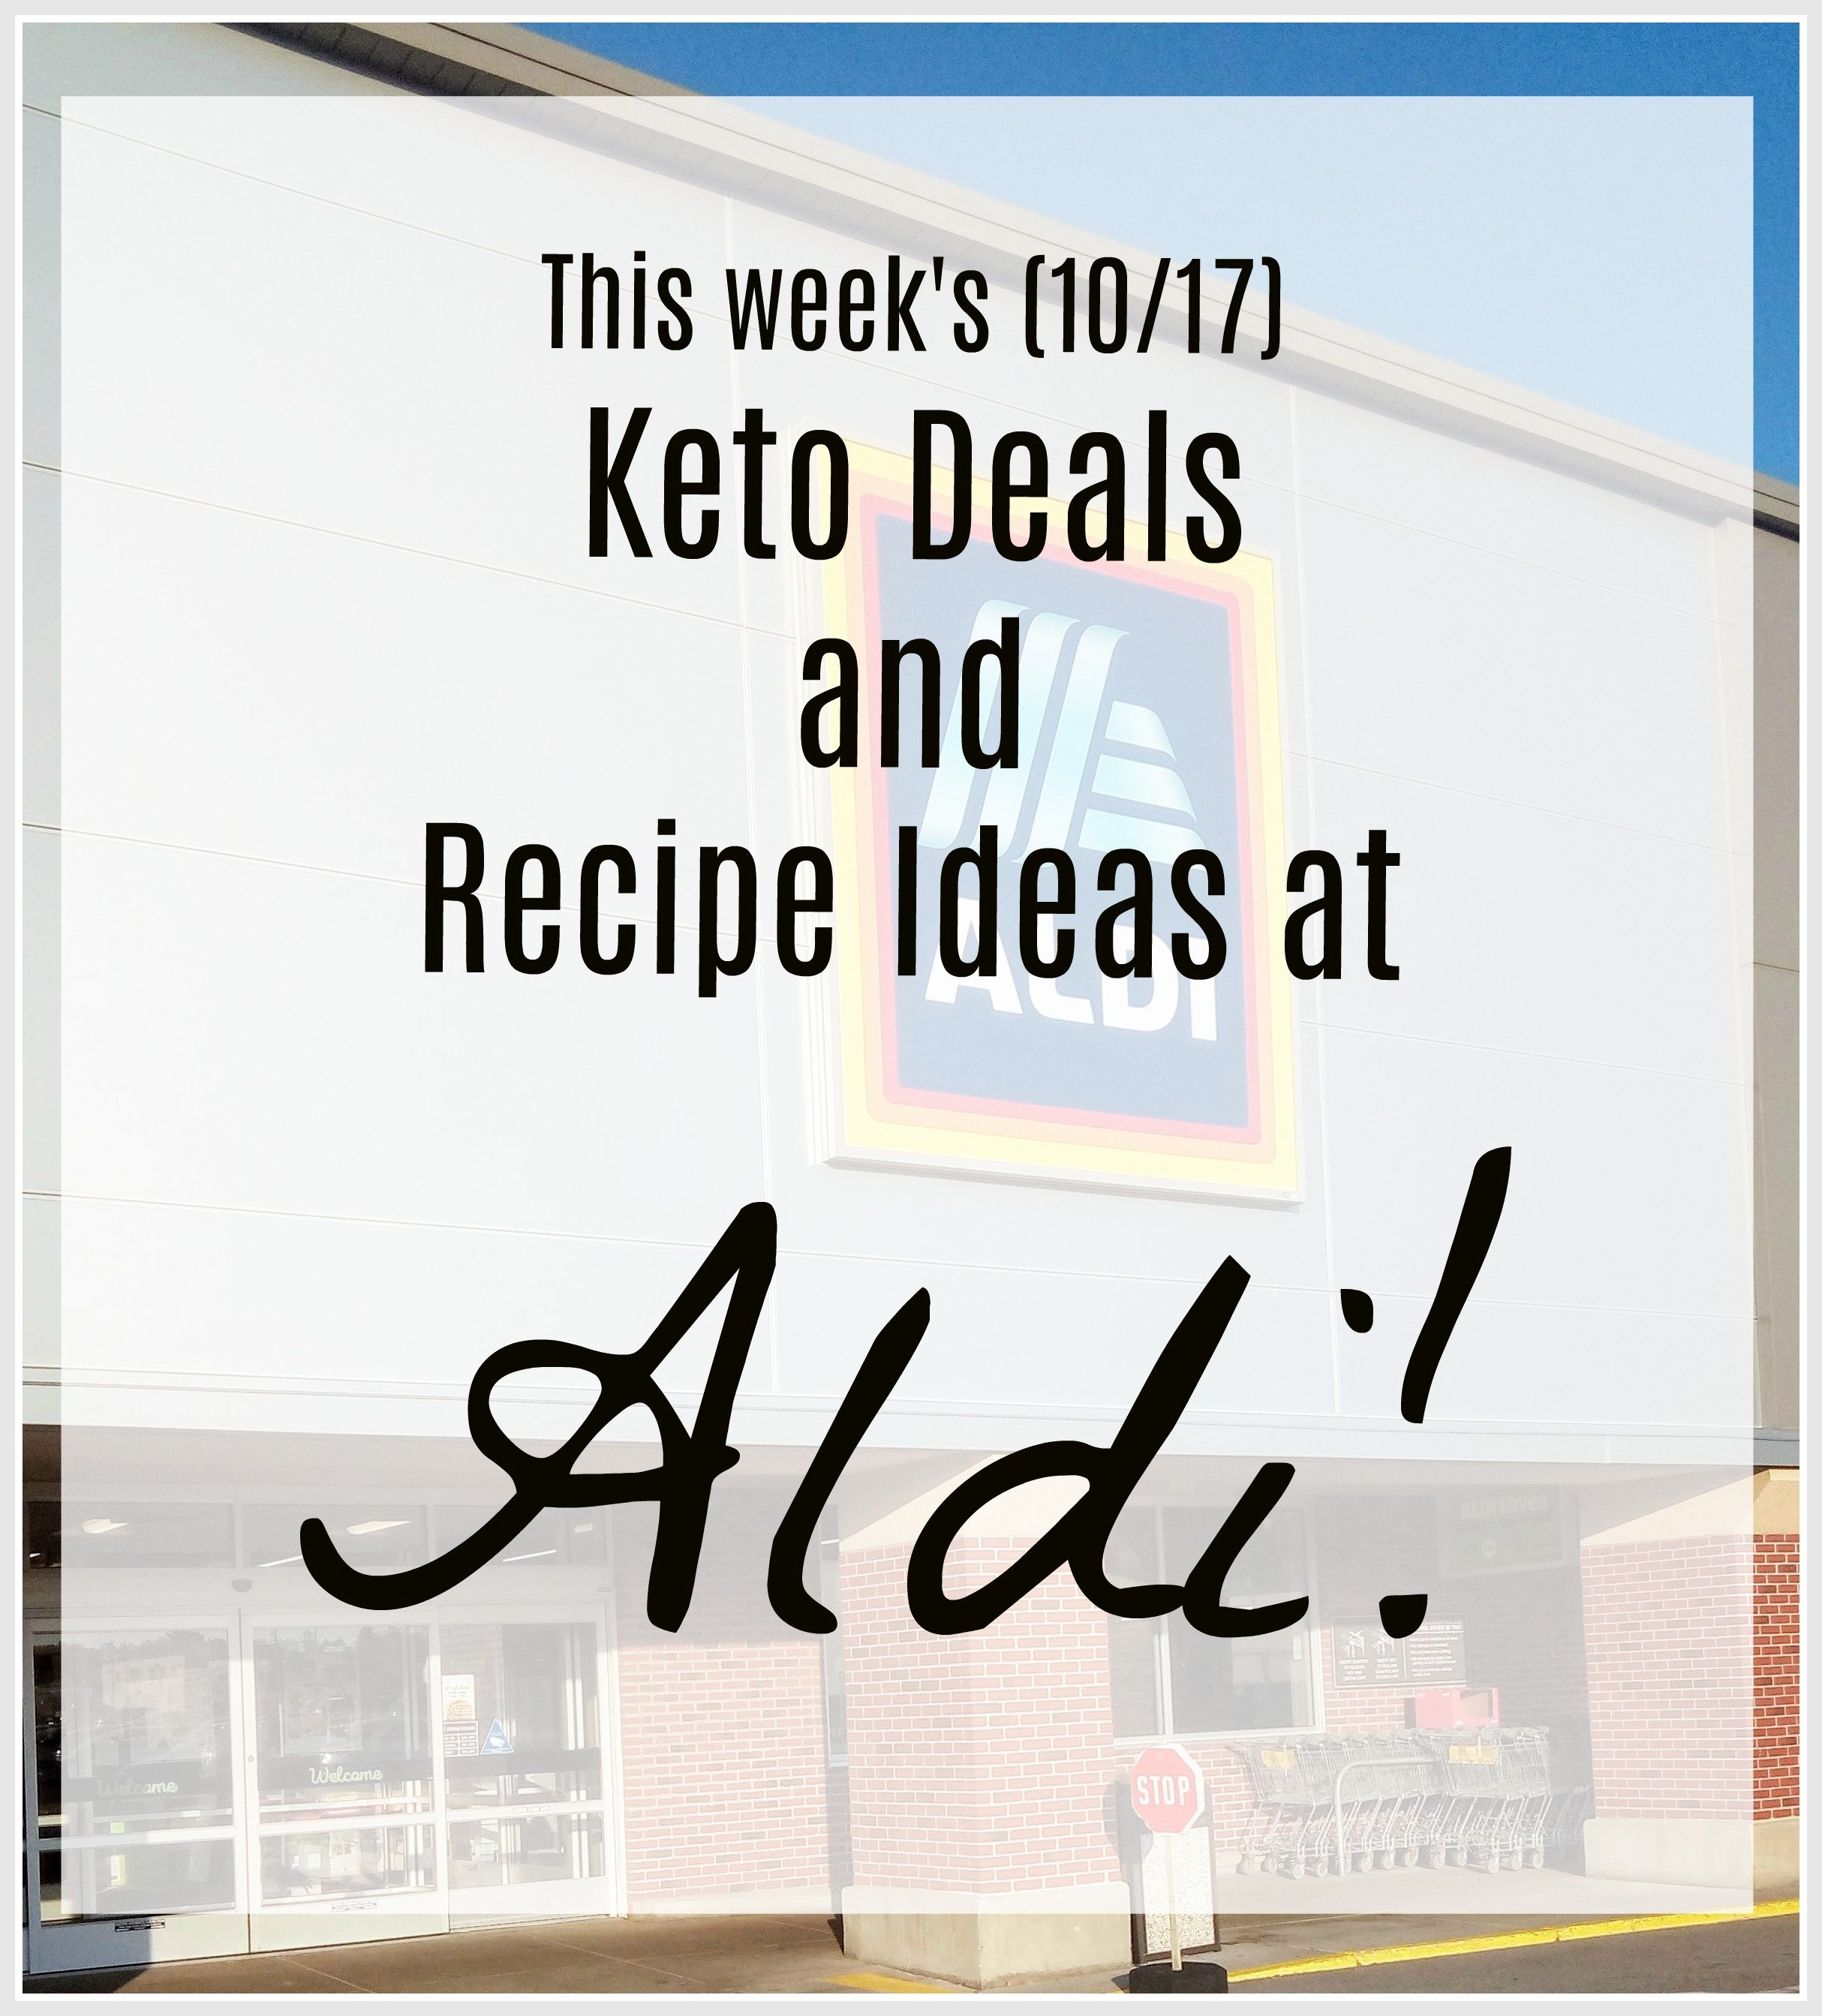 Keto Deals and Recipe Ideas at Aldi (week of 10/17)